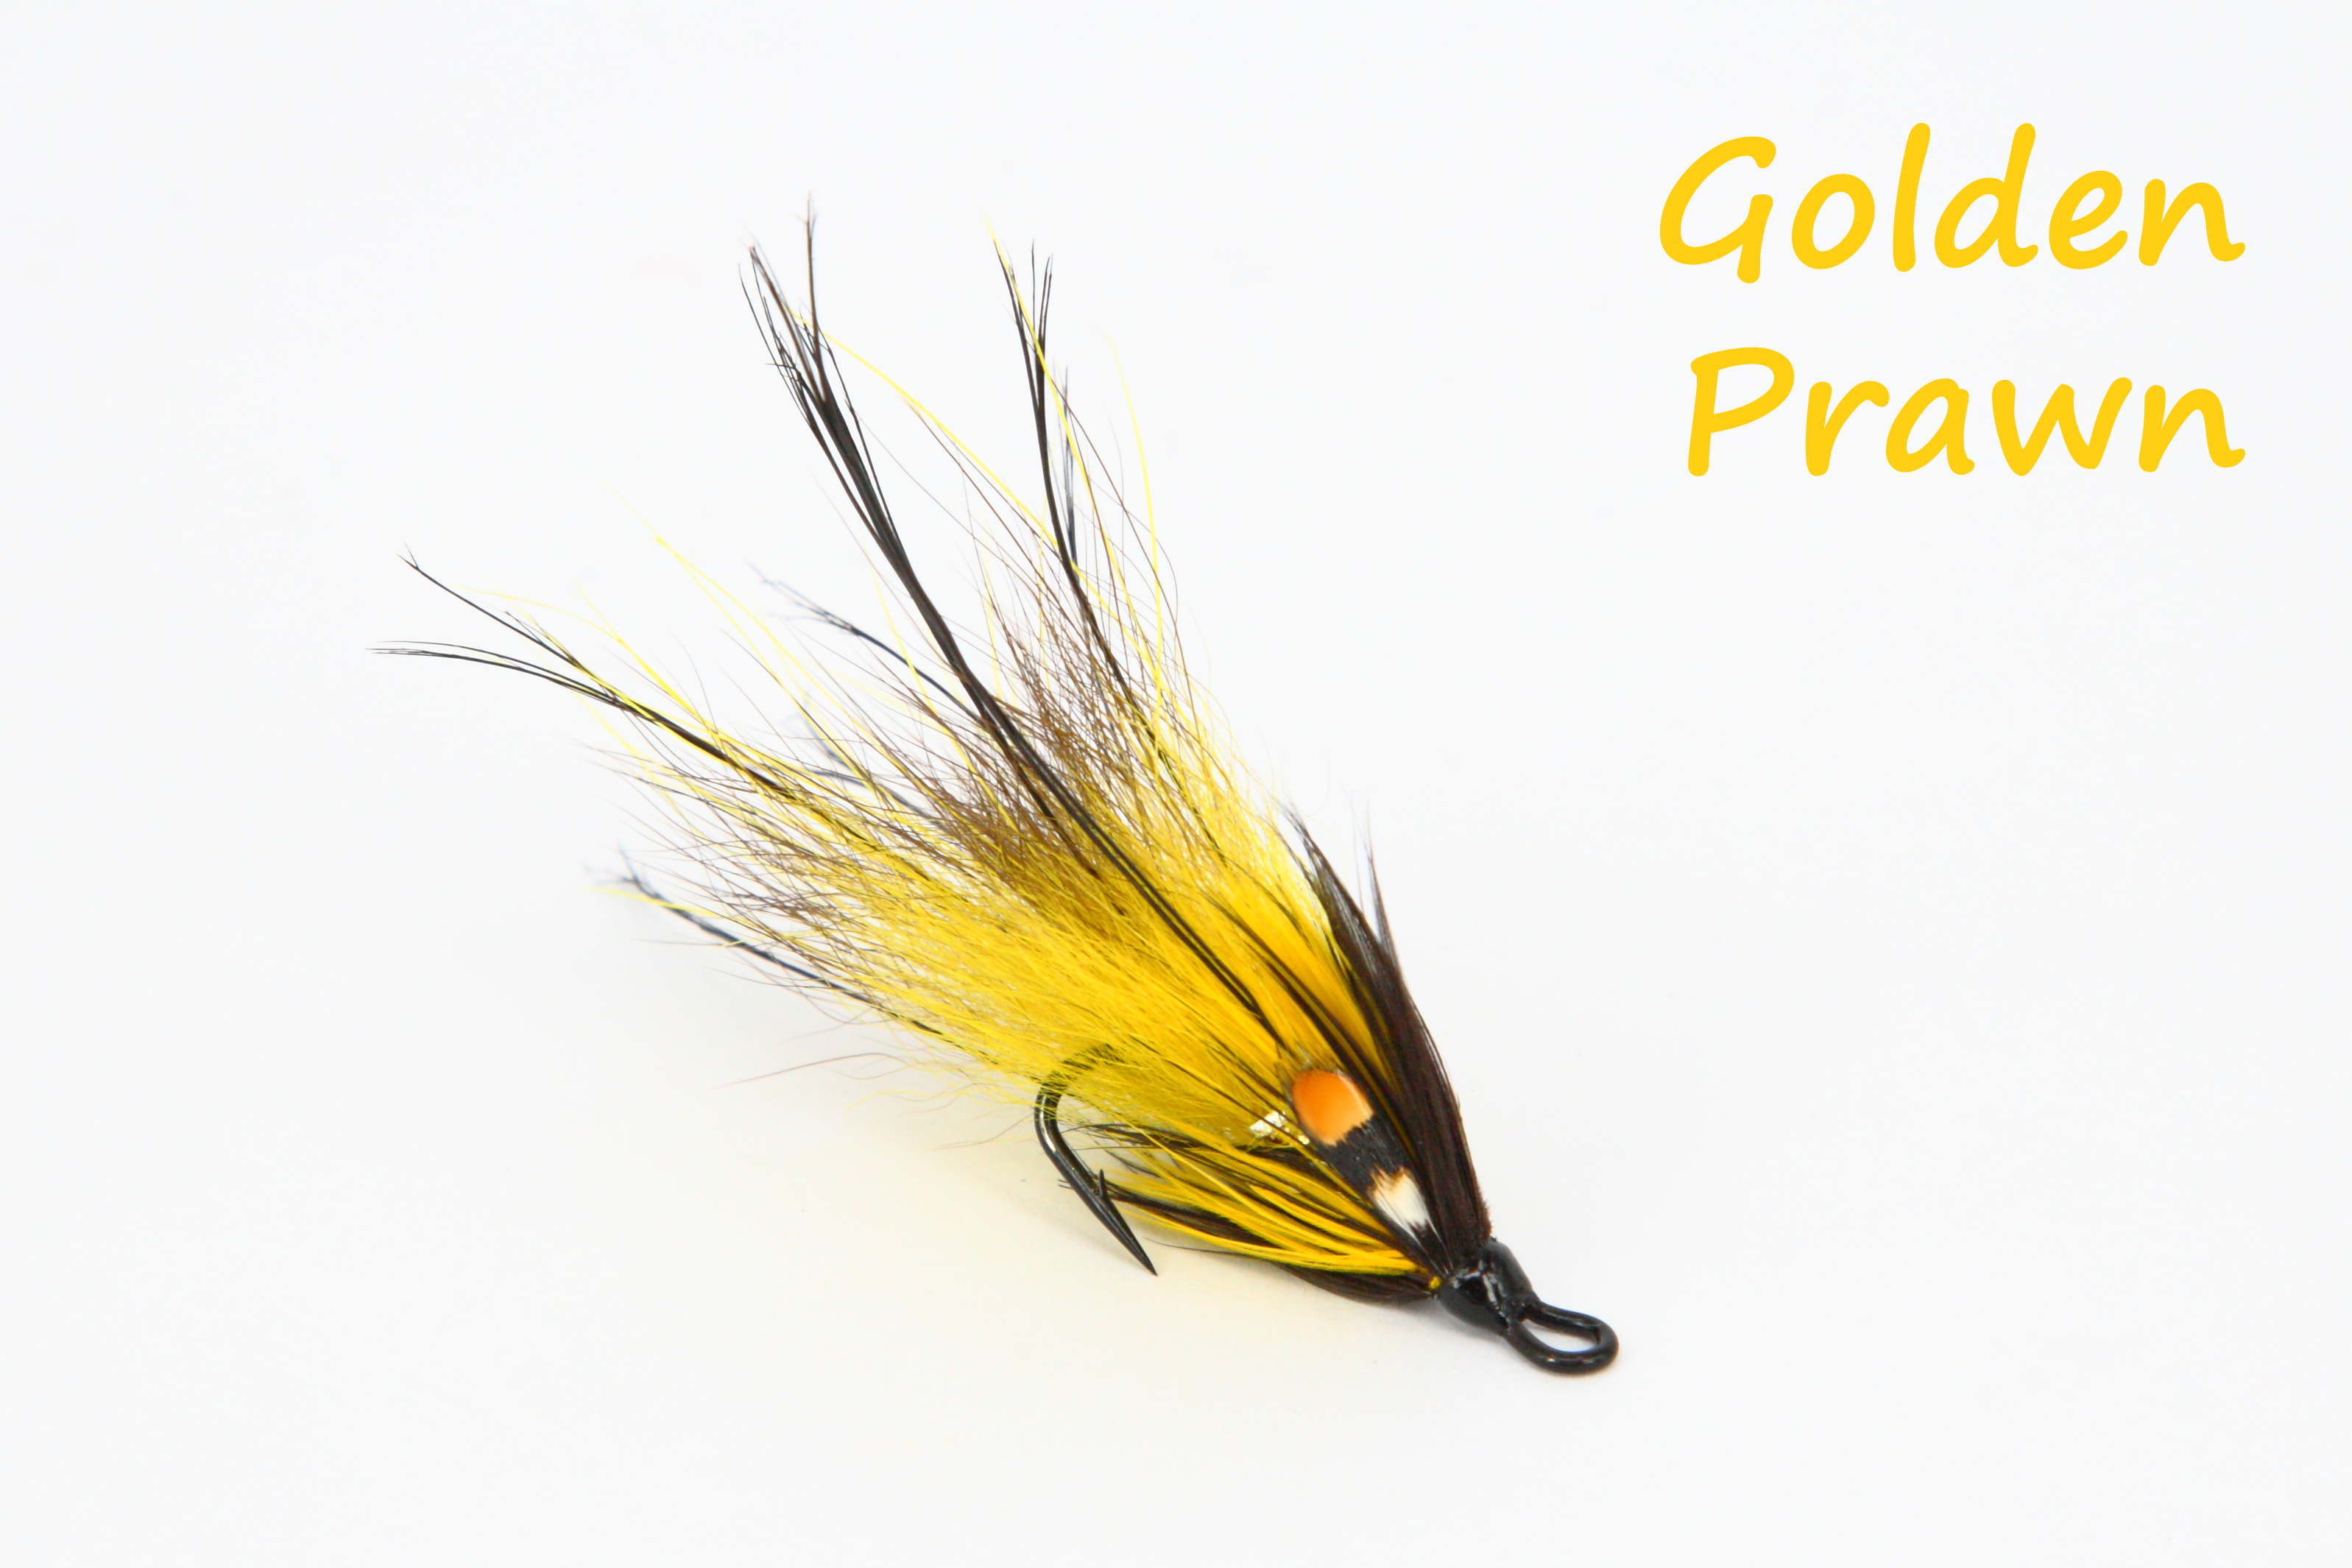 Golden Prawn FDG copy.jpg